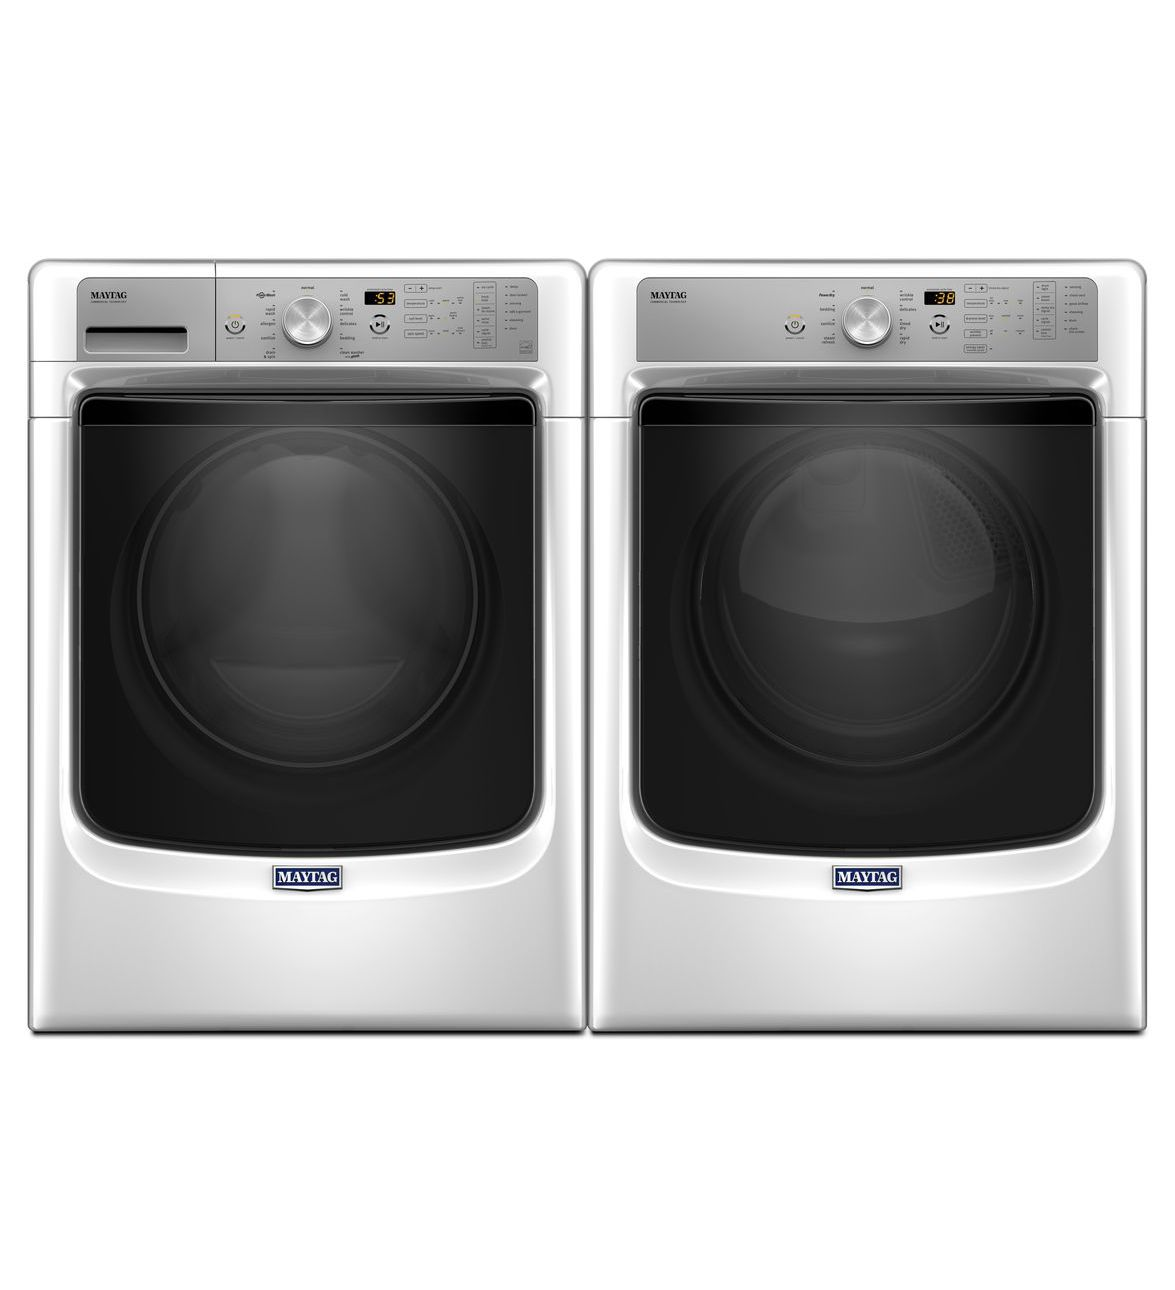 Uncategorized Home Hardware Kitchen Appliances washer dryer pair wellington home hardware appliances